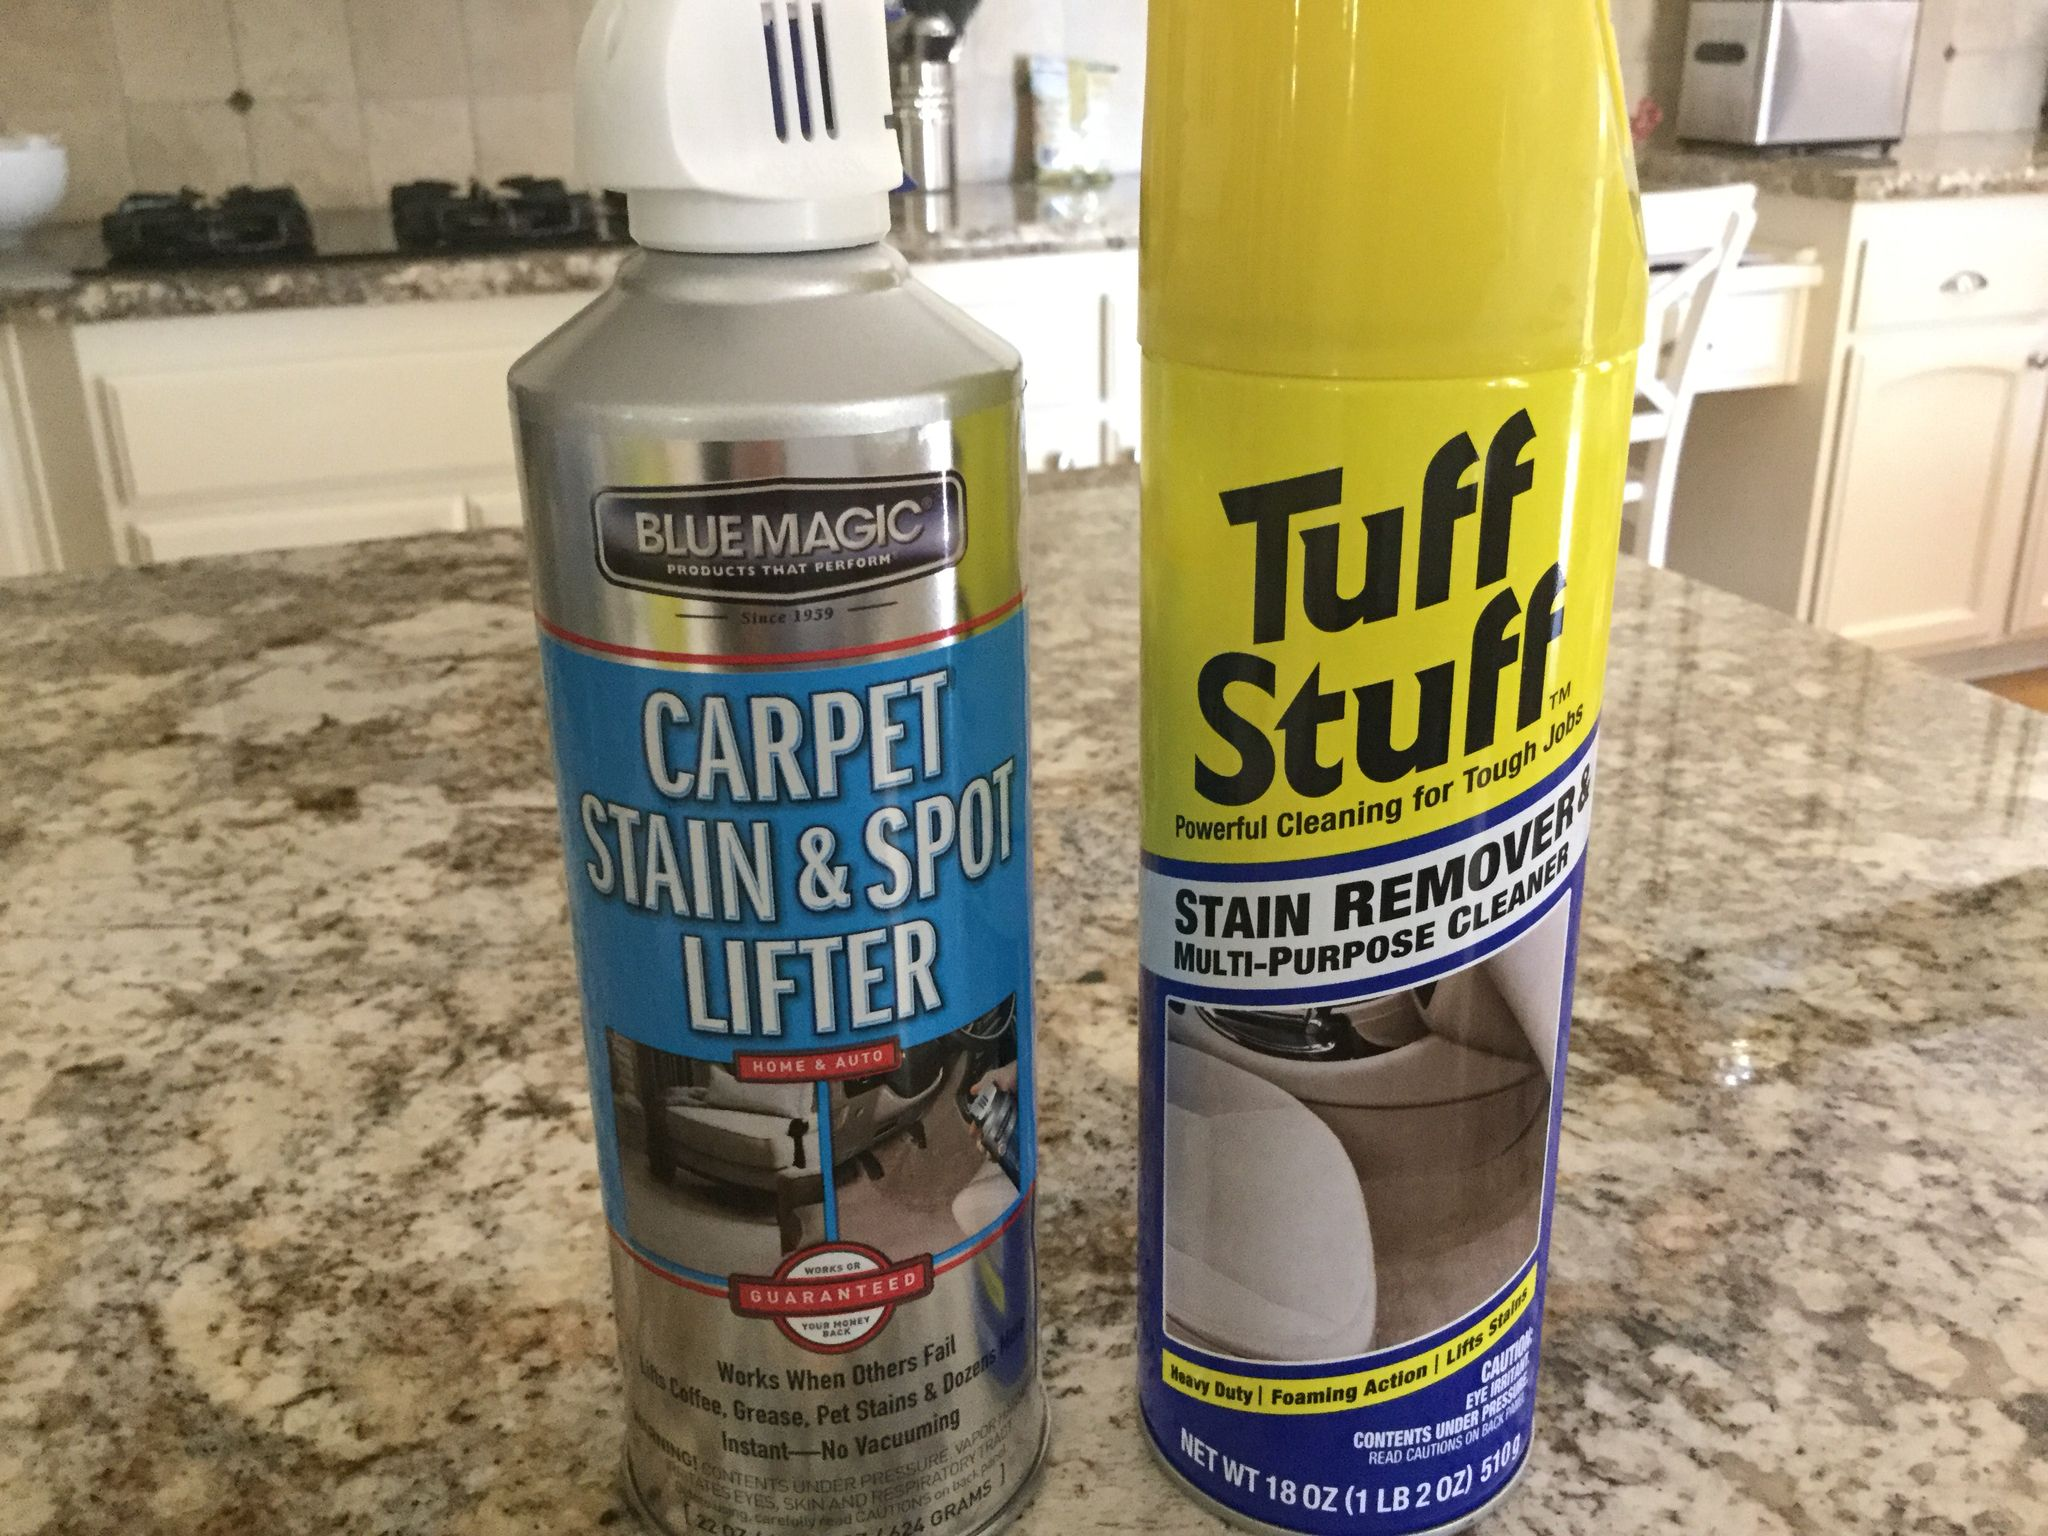 Use For Bad Smells In Car Vomit First Use Carpet Stain And Spot Lifter Then Tuff Stuff Stain Remover Auto Store Carpet Stains Stain Remover Polar Bottle